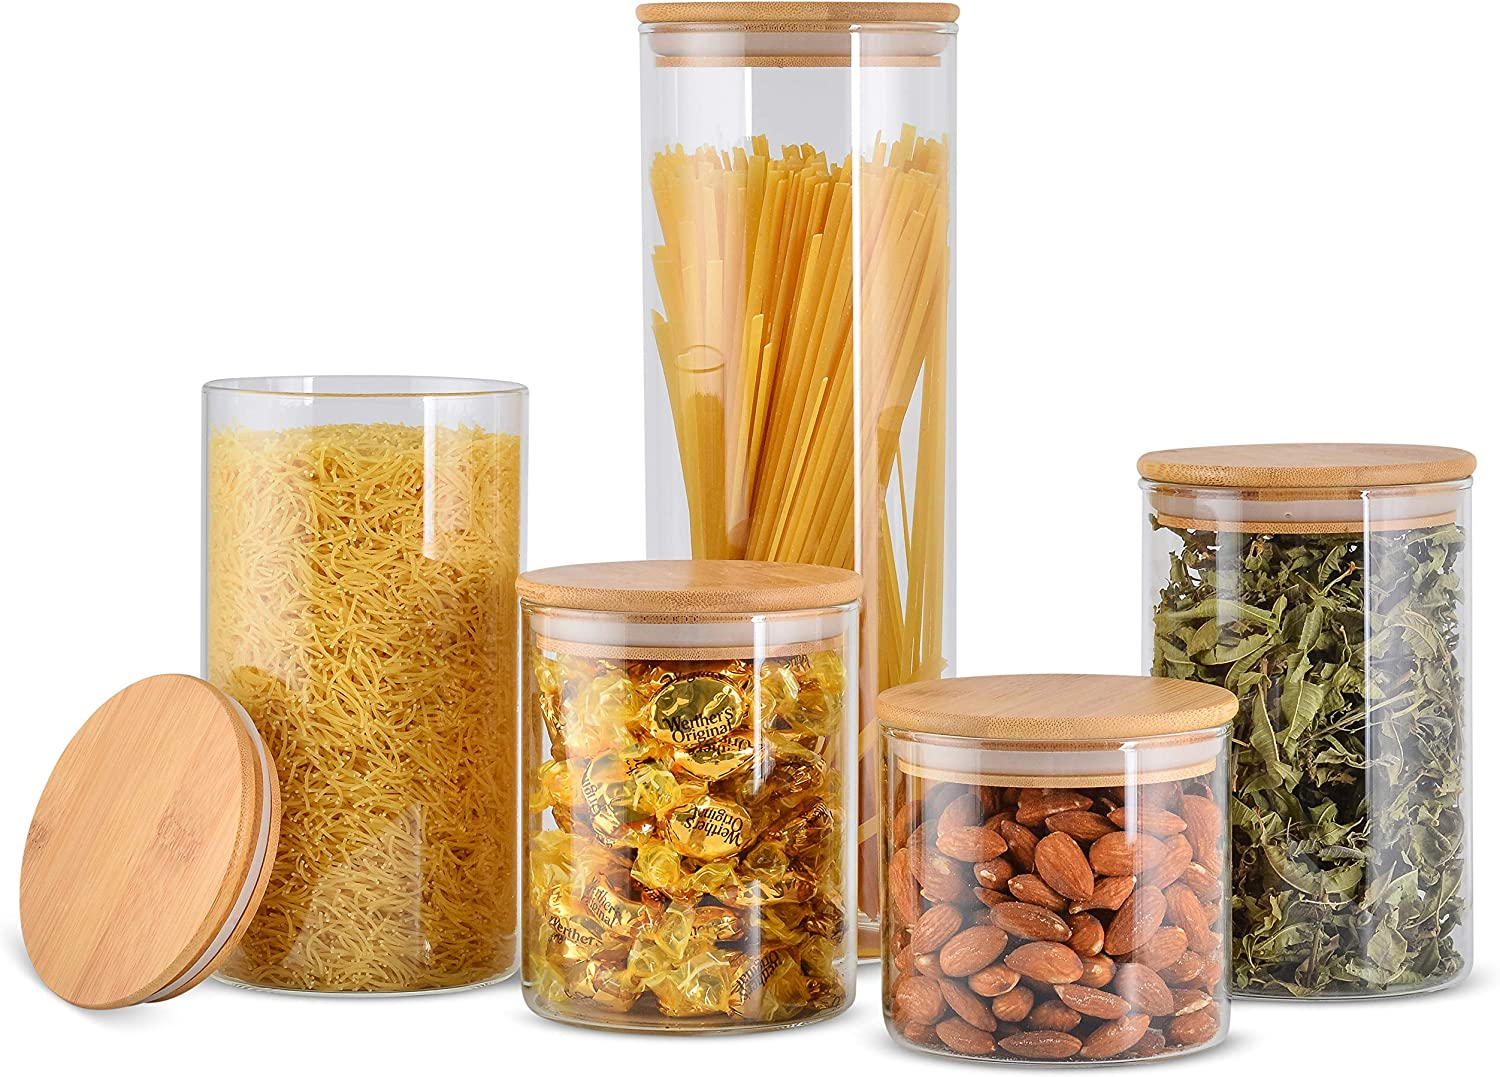 Set of 5 Glass Containers for Food Storage with Lids; Glass Canister Sets for Kitchen Counter; Ideal for Coffee and Rice Containers, Flour and Sugar Airtight Containers; Glass Cookie Jar with Lid